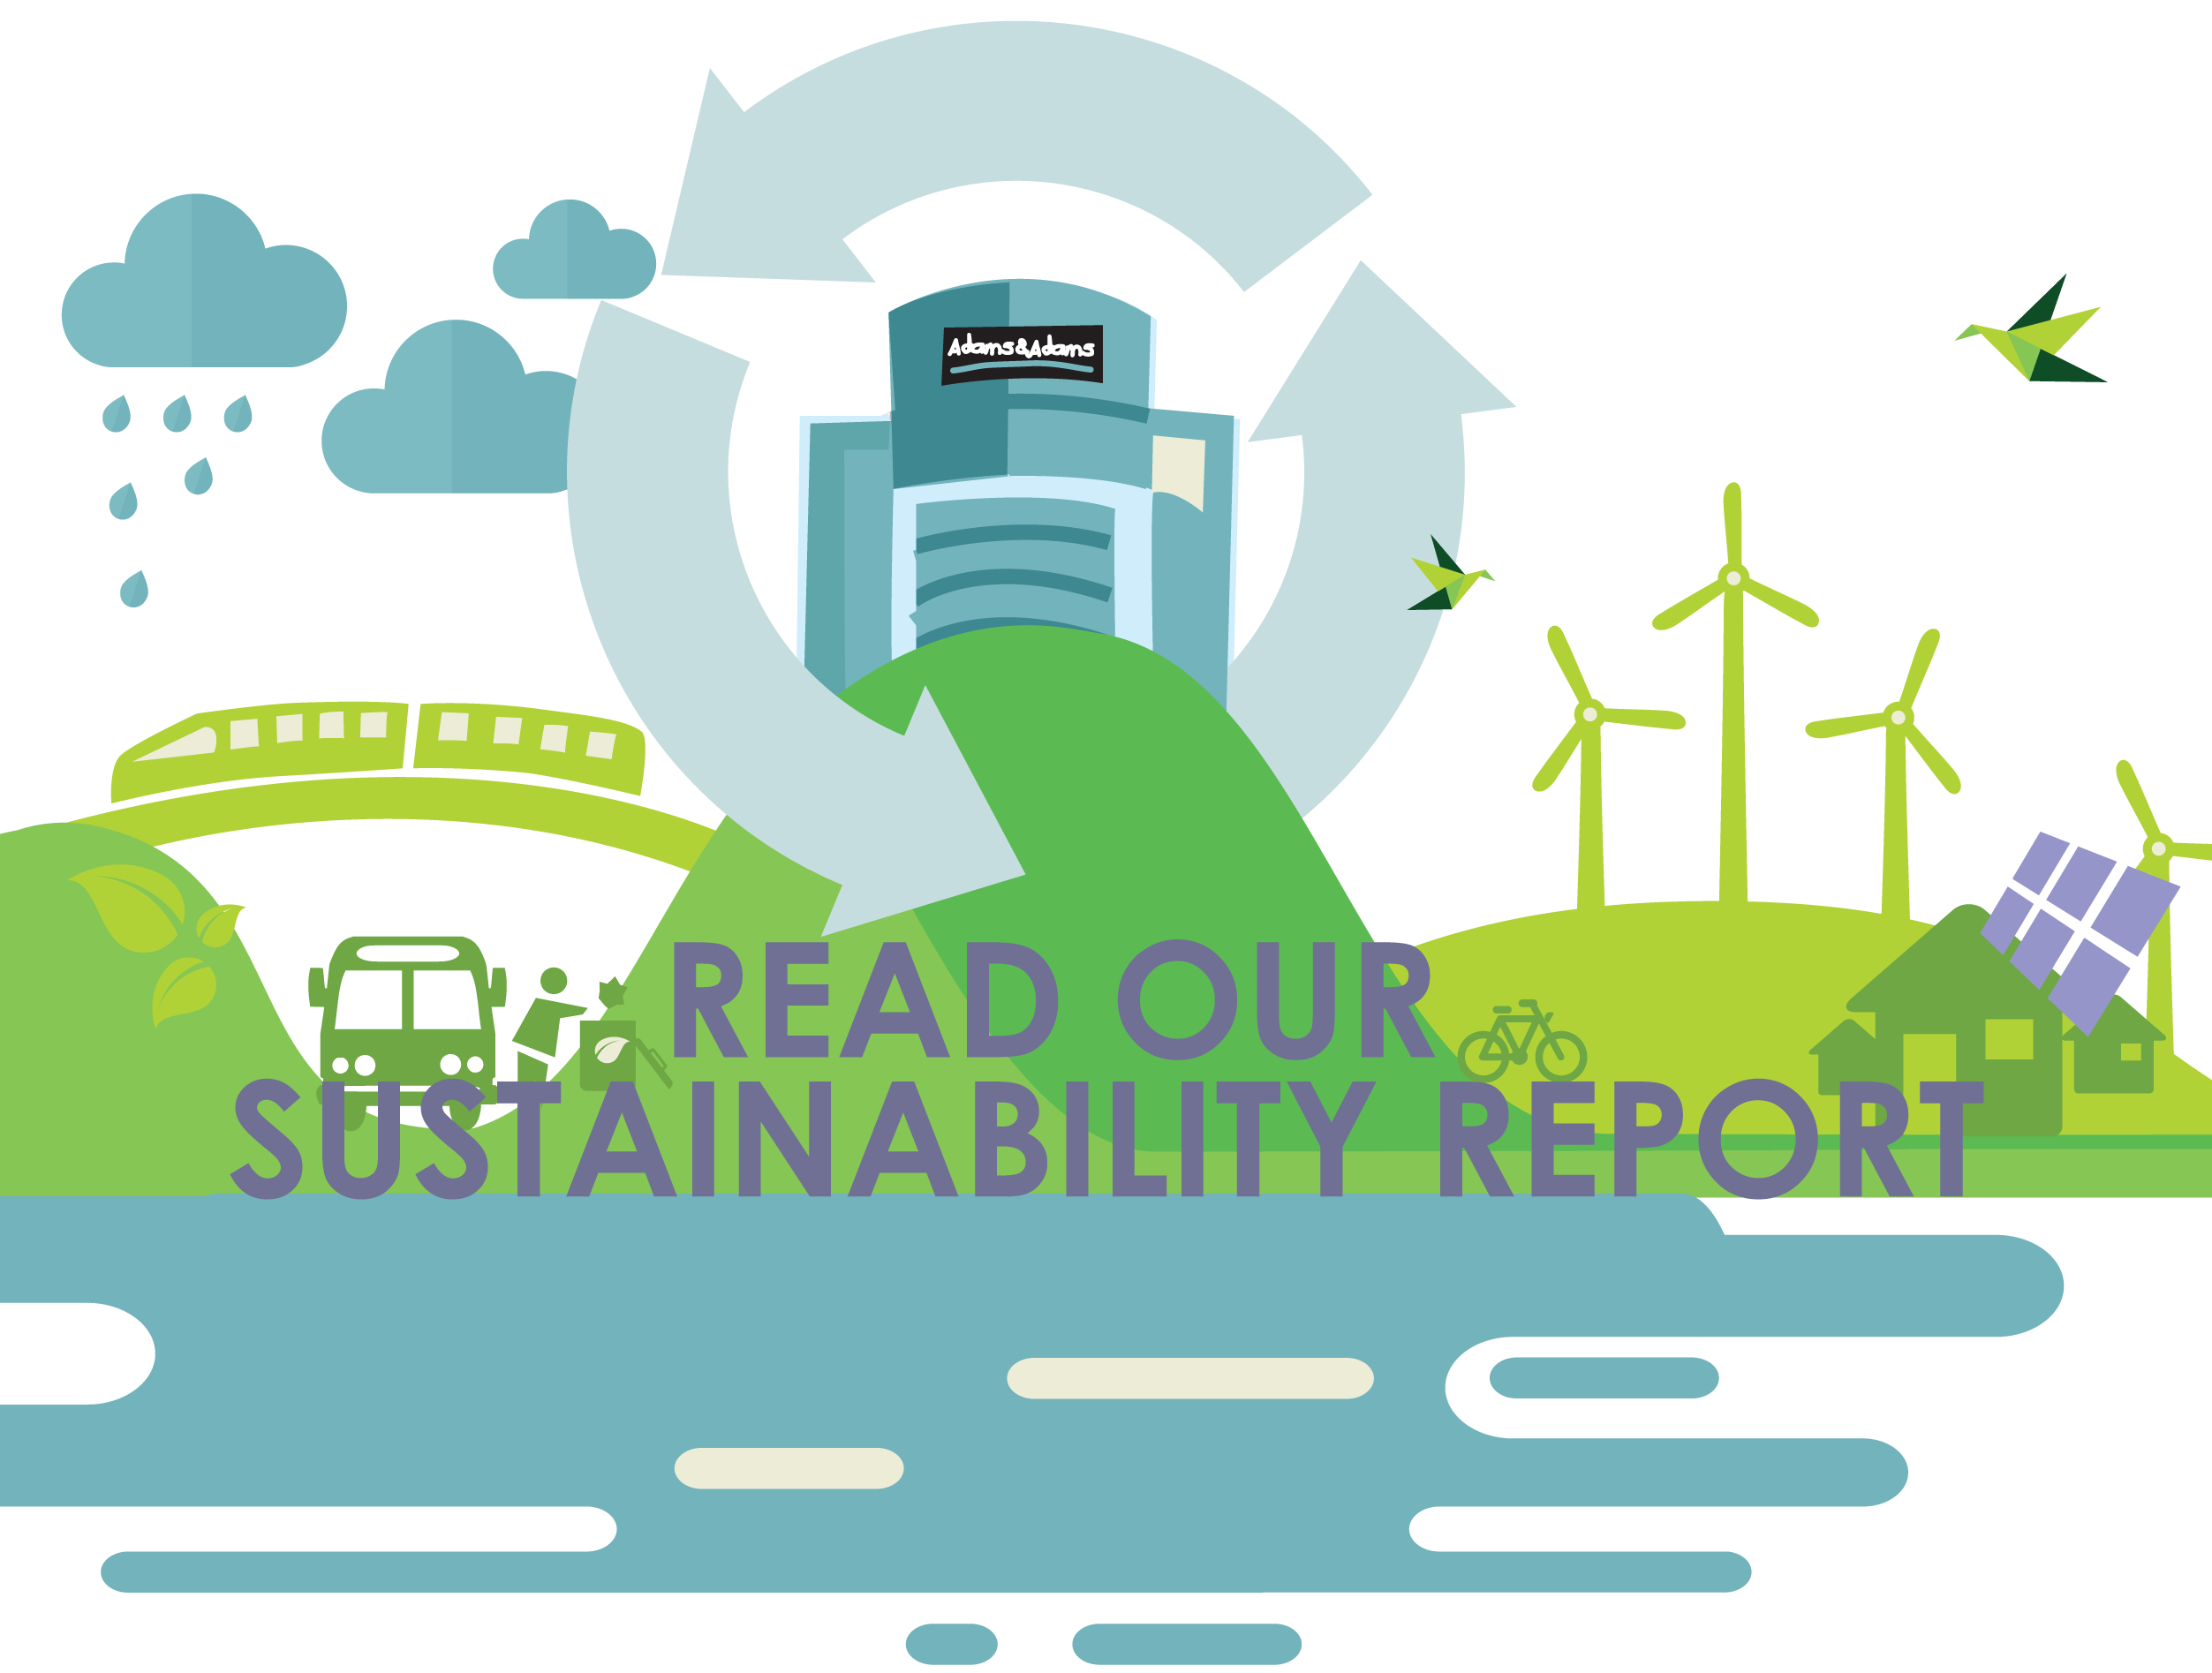 Adams_Sustainability Report_2016a